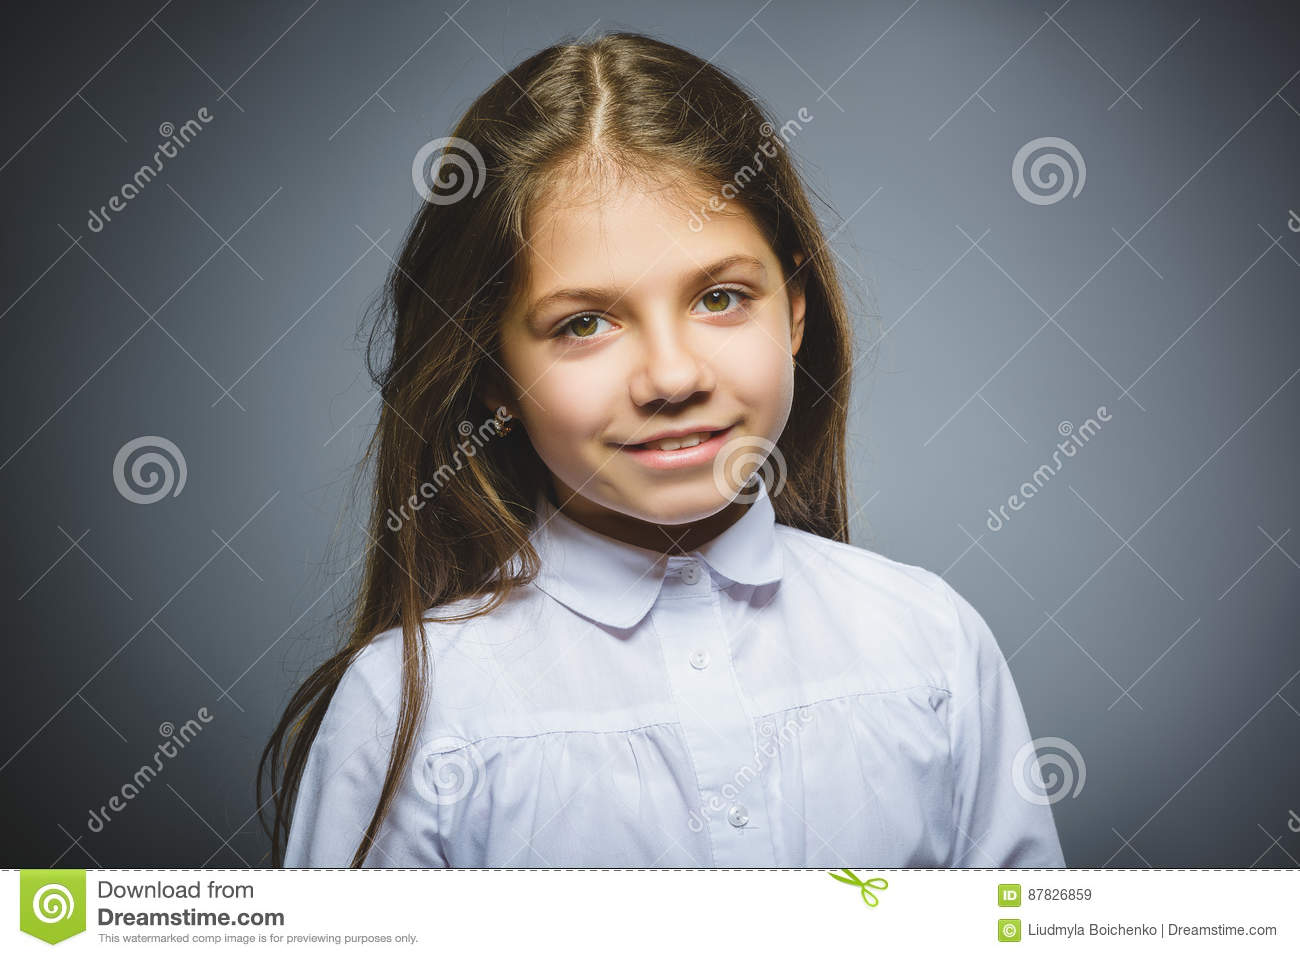 Happy girl. Closeup Portrait handsome child smiling isolated on grey